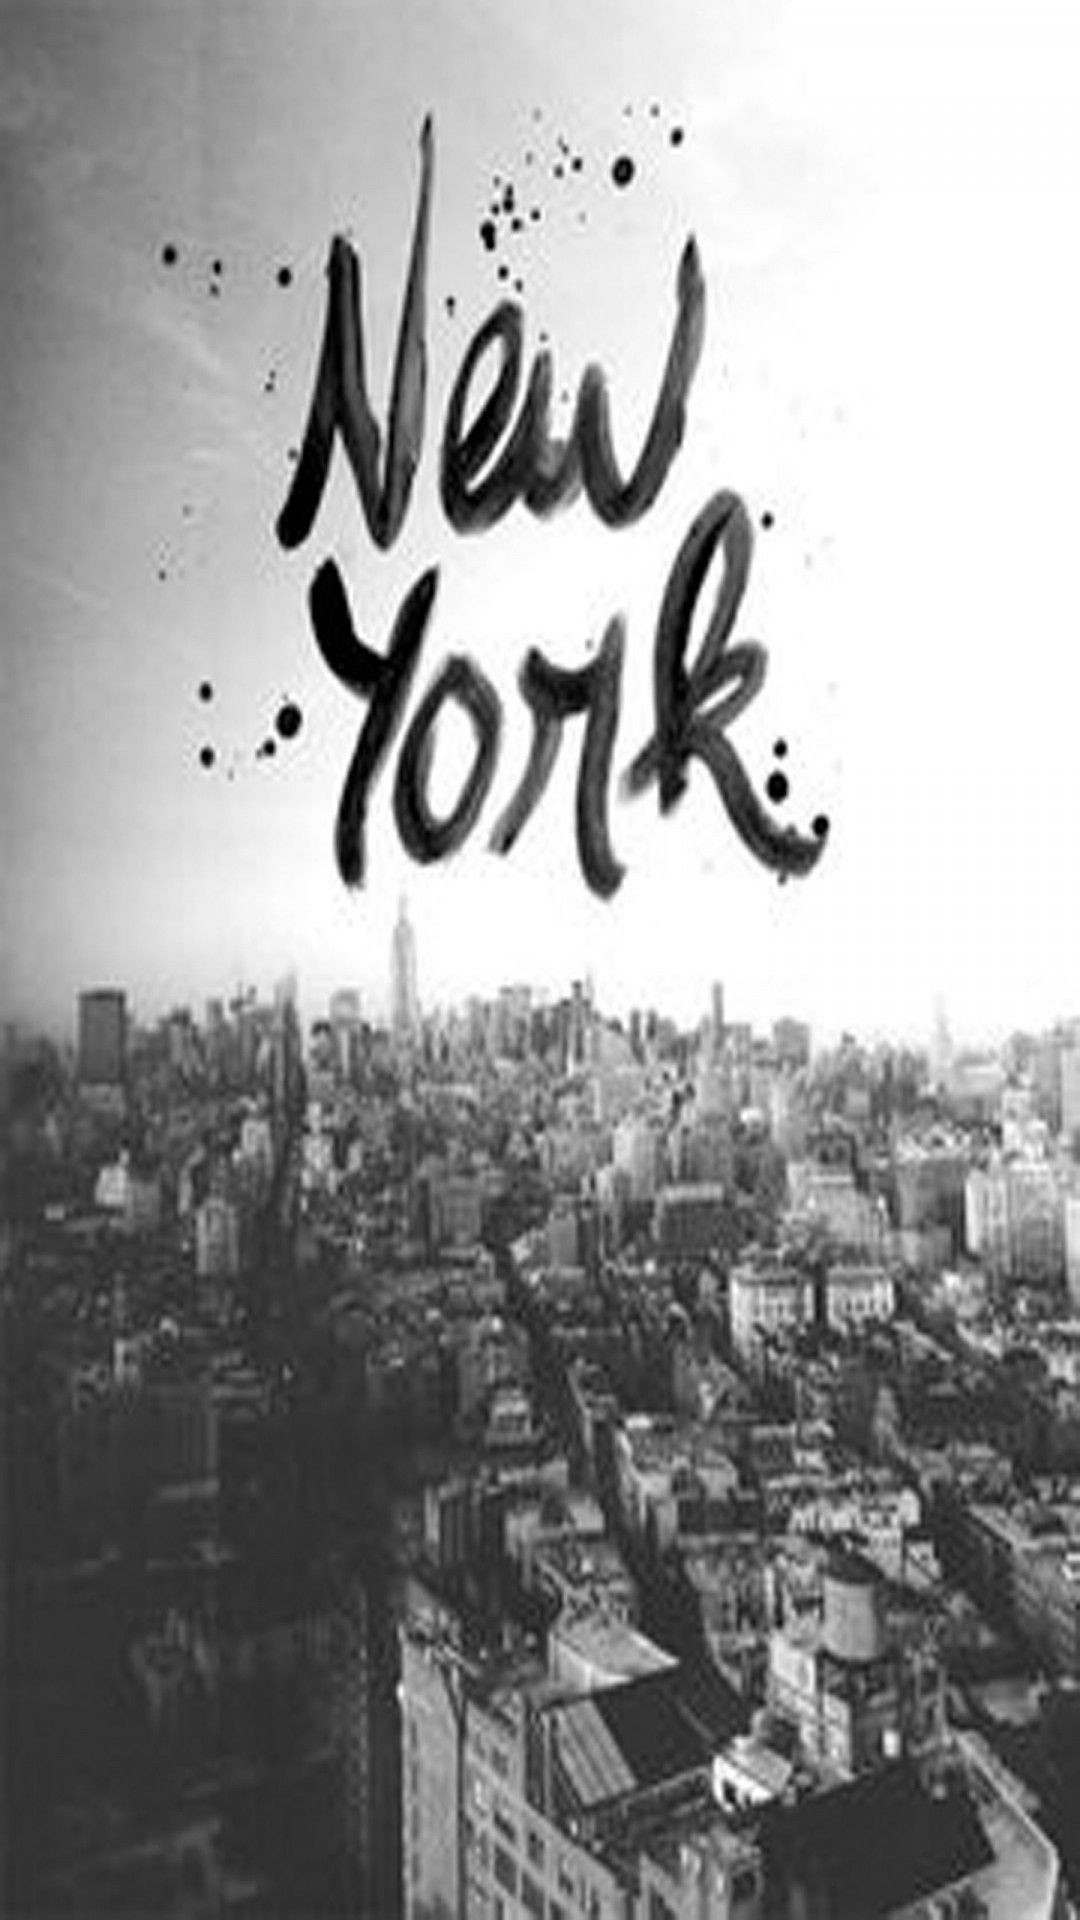 75 New York Wallpaper For Iphone